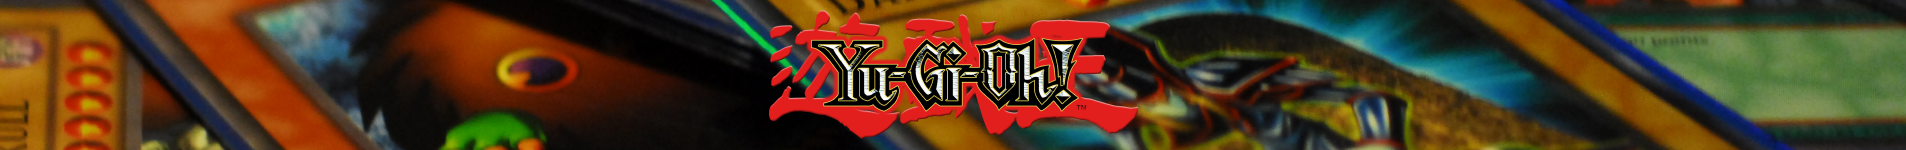 Yugioh cover photo